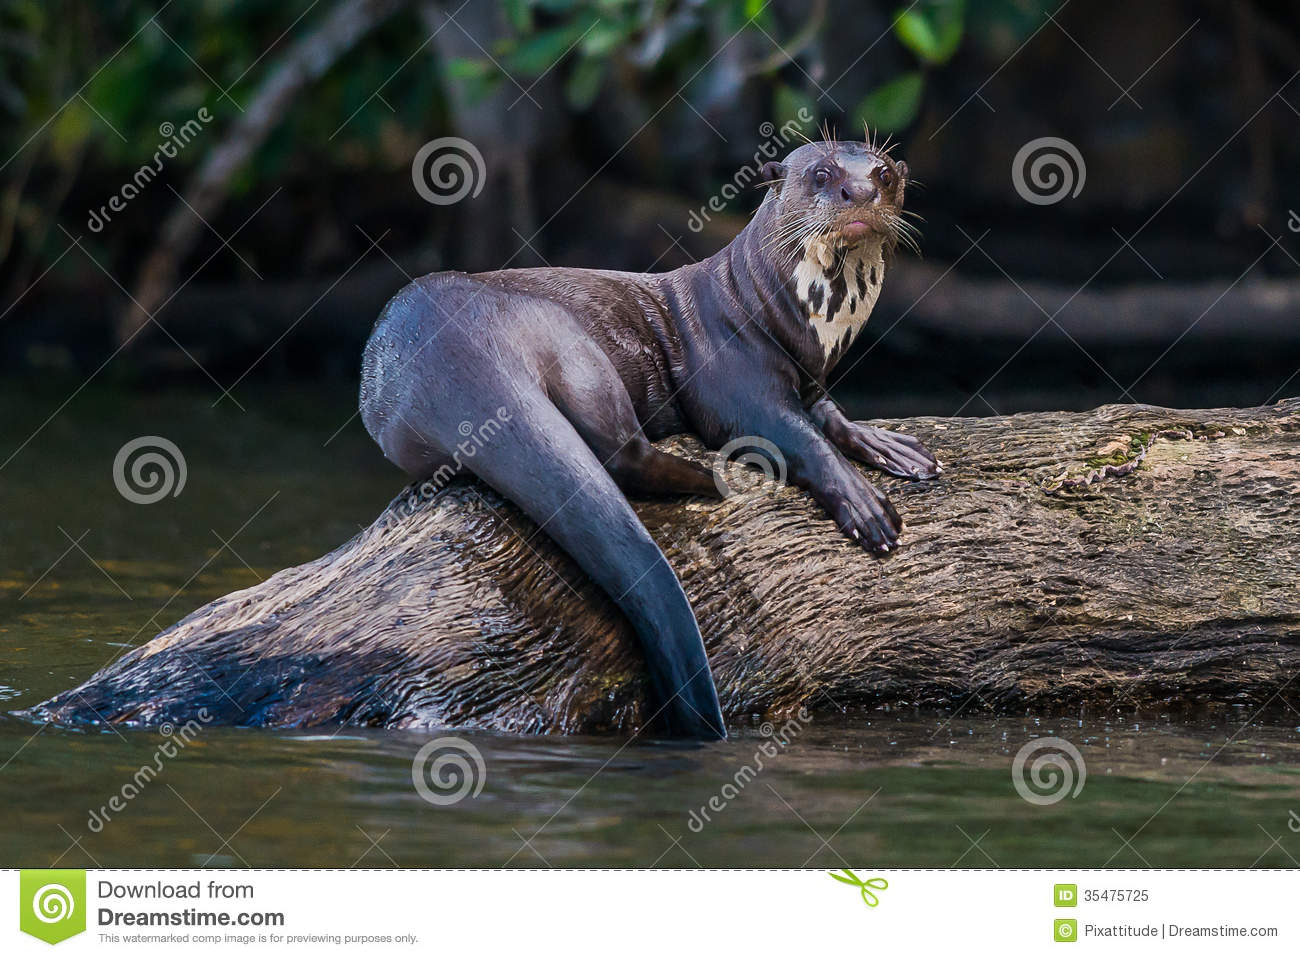 Giant otter standing on log in the peruvian Amazon jungle